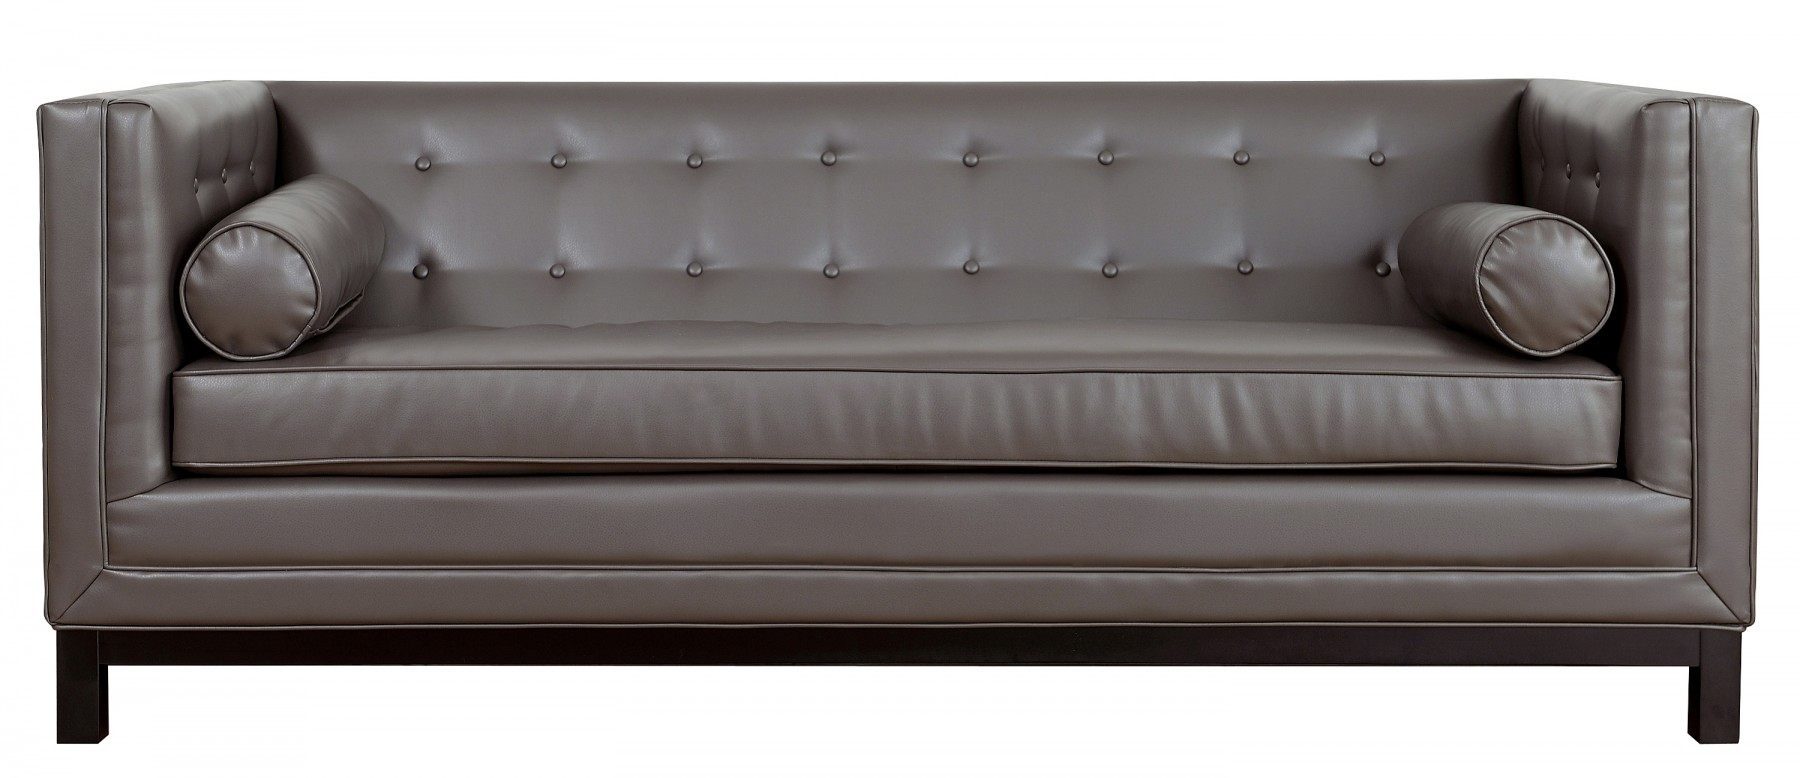 Always Suitable Grey Leather Couch Couch Amp Sofa Ideas